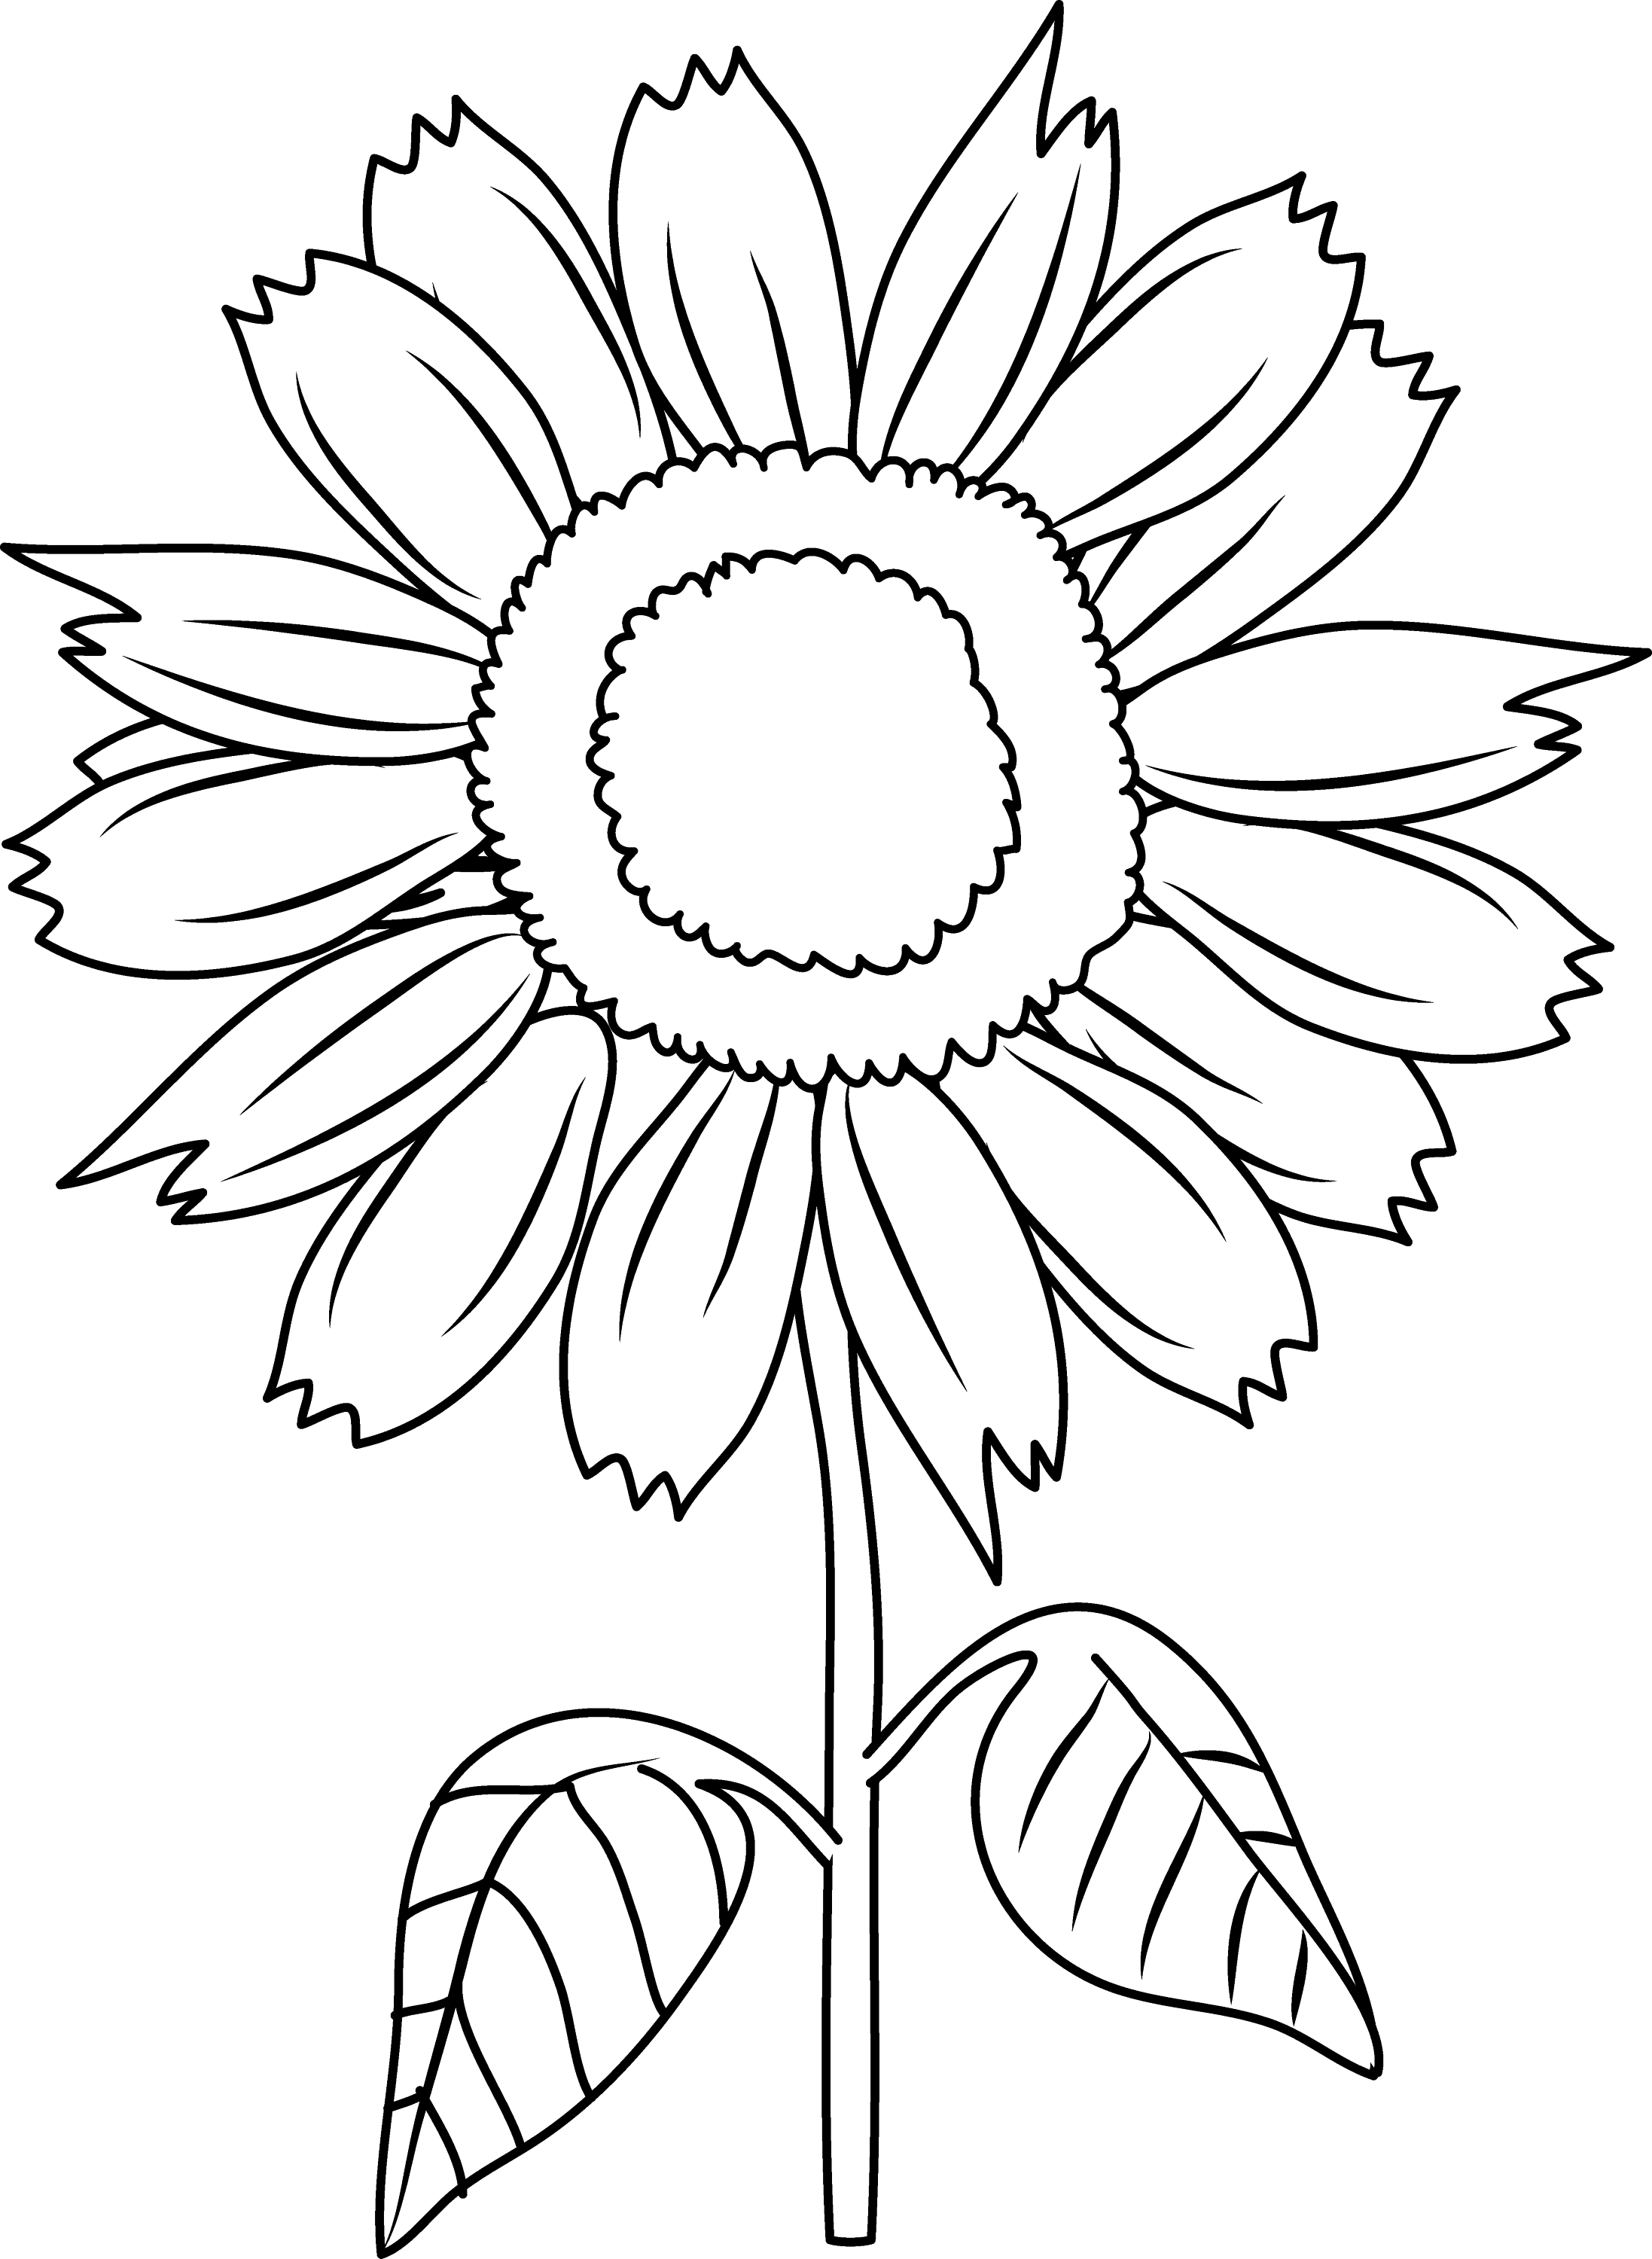 sunflower coloring free printable sunflower coloring pages for kids coloring sunflower